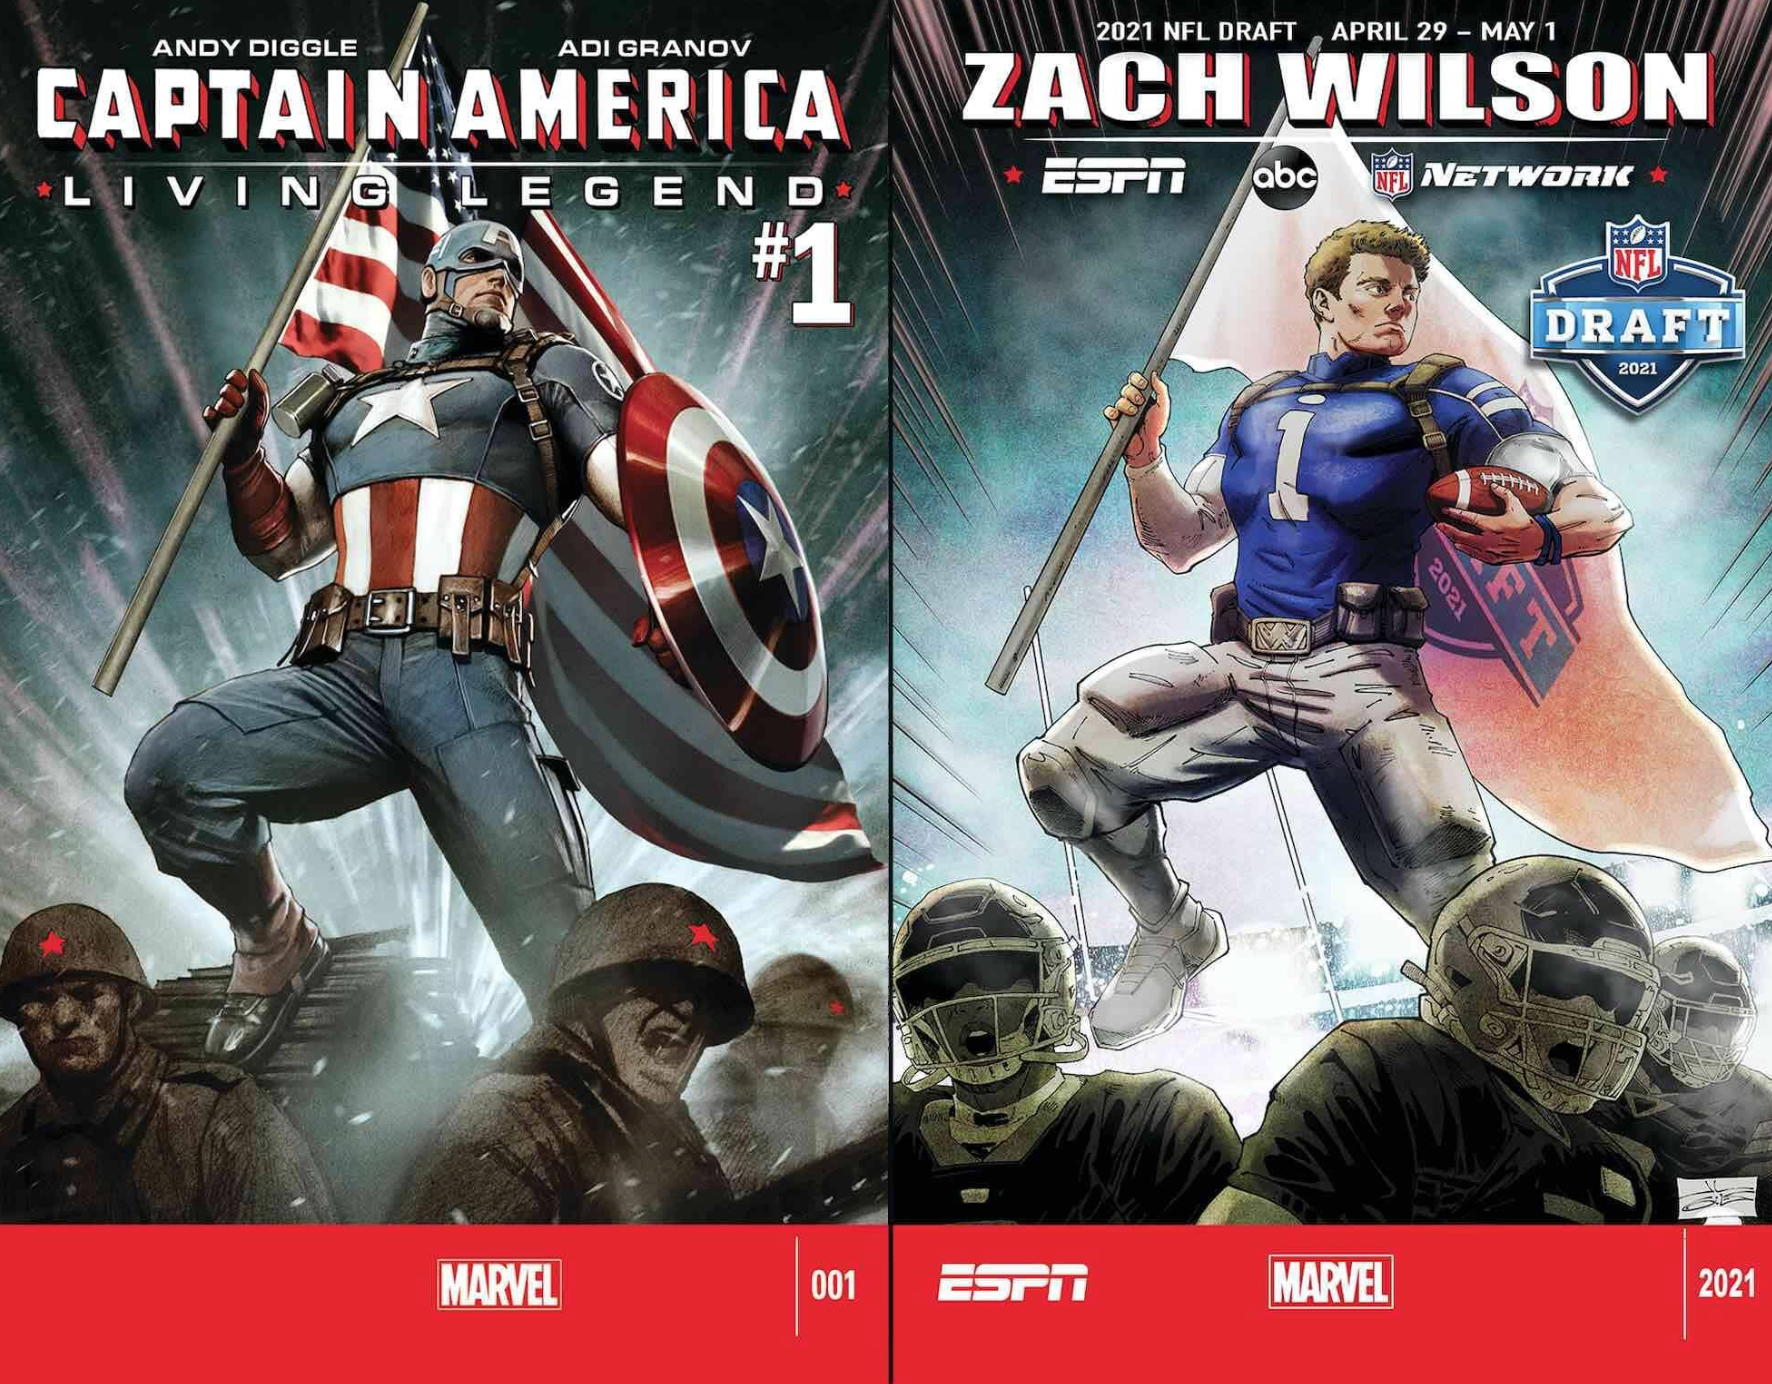 Zach Wilson by J.L. Giles and Ian Herring, after CAPTAIN AMERICA: LIVING LEGEND #1 by Adi Granov